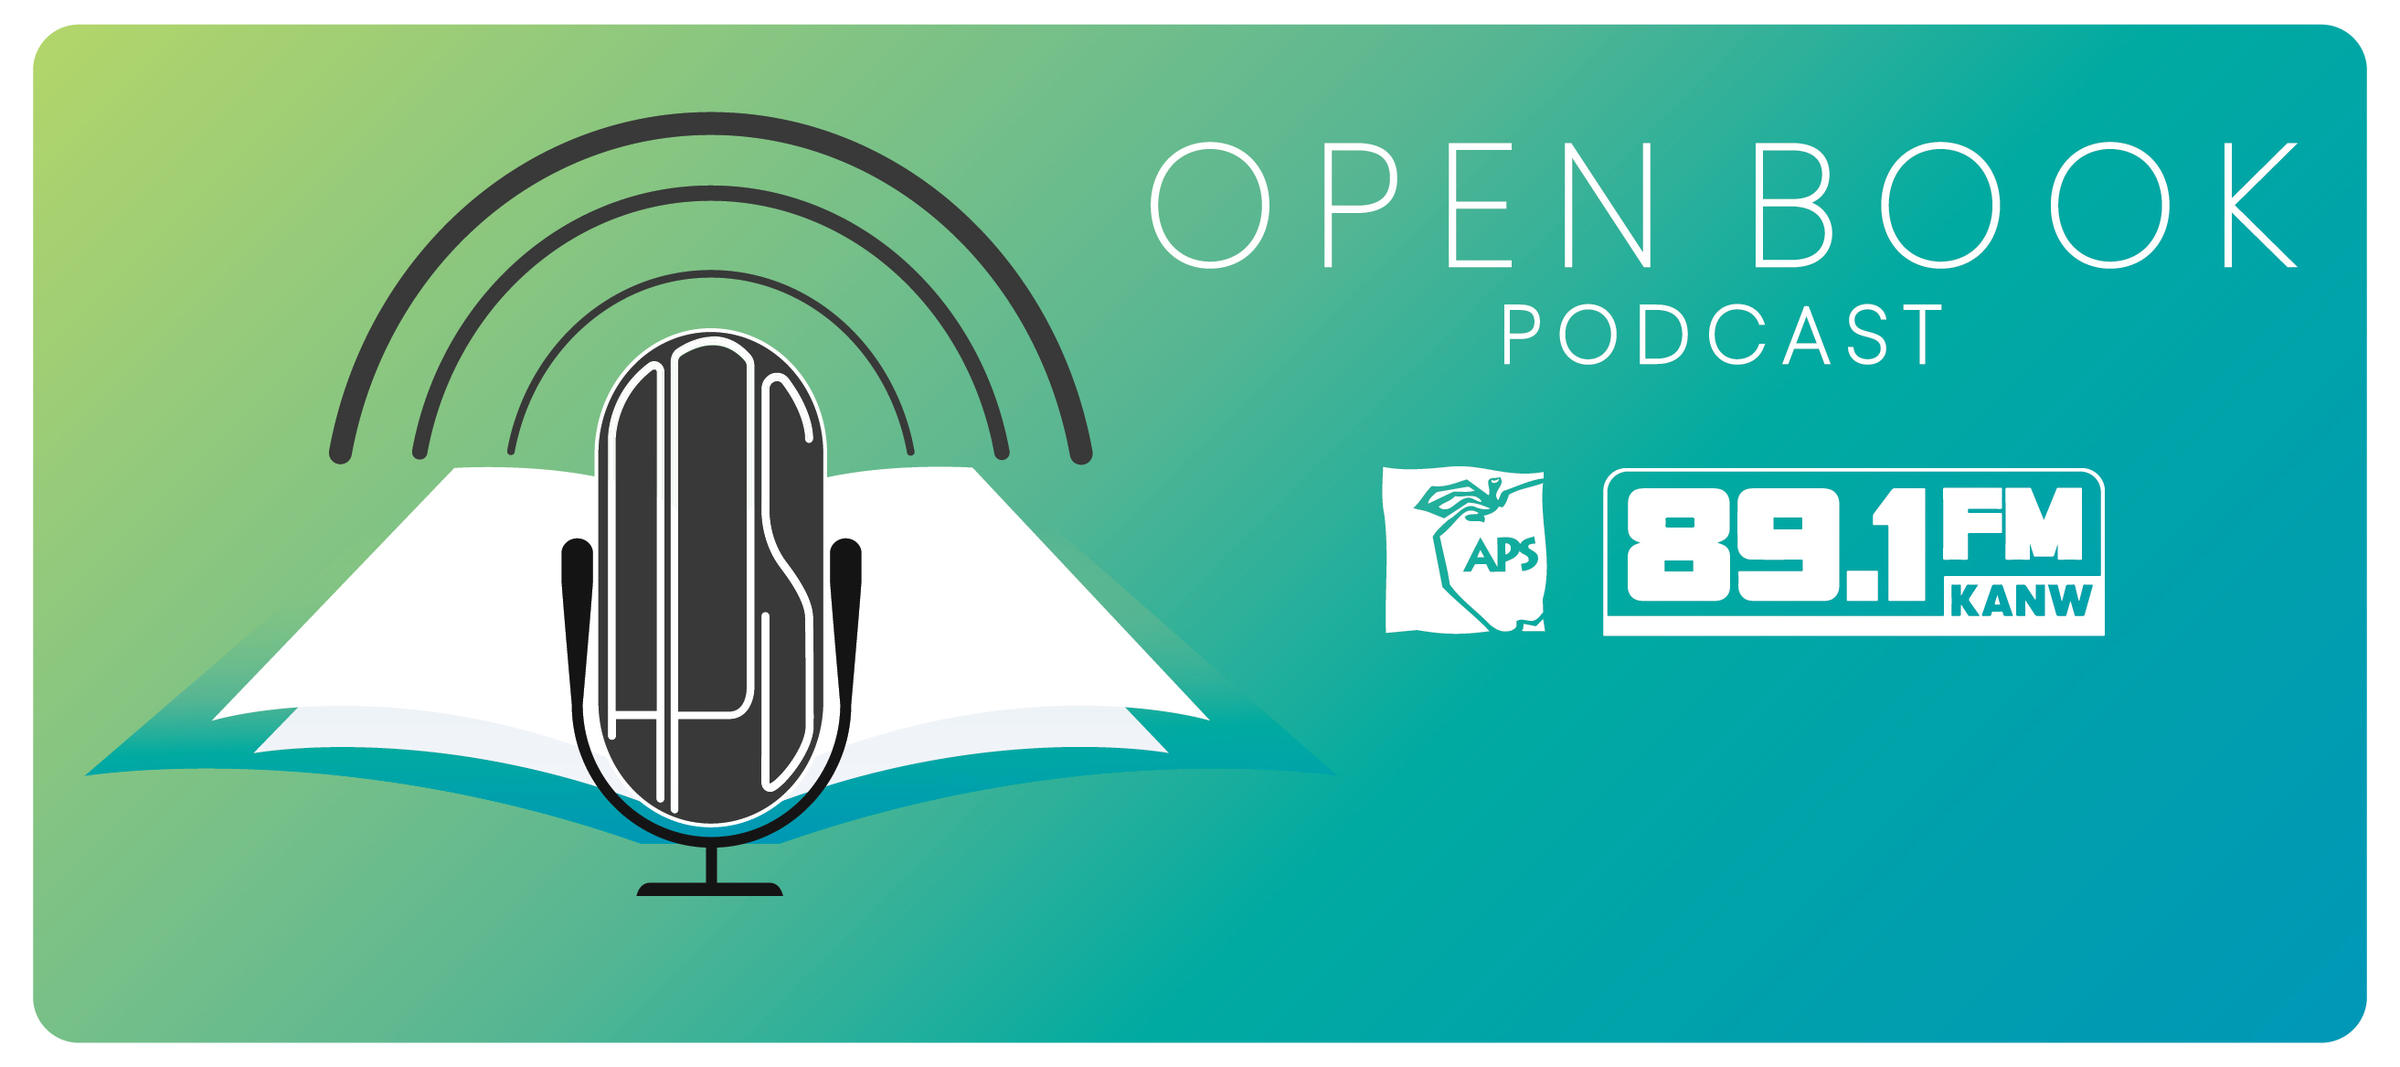 APS Open Book - Episode 4: Fine Arts in Our Schools | KANW